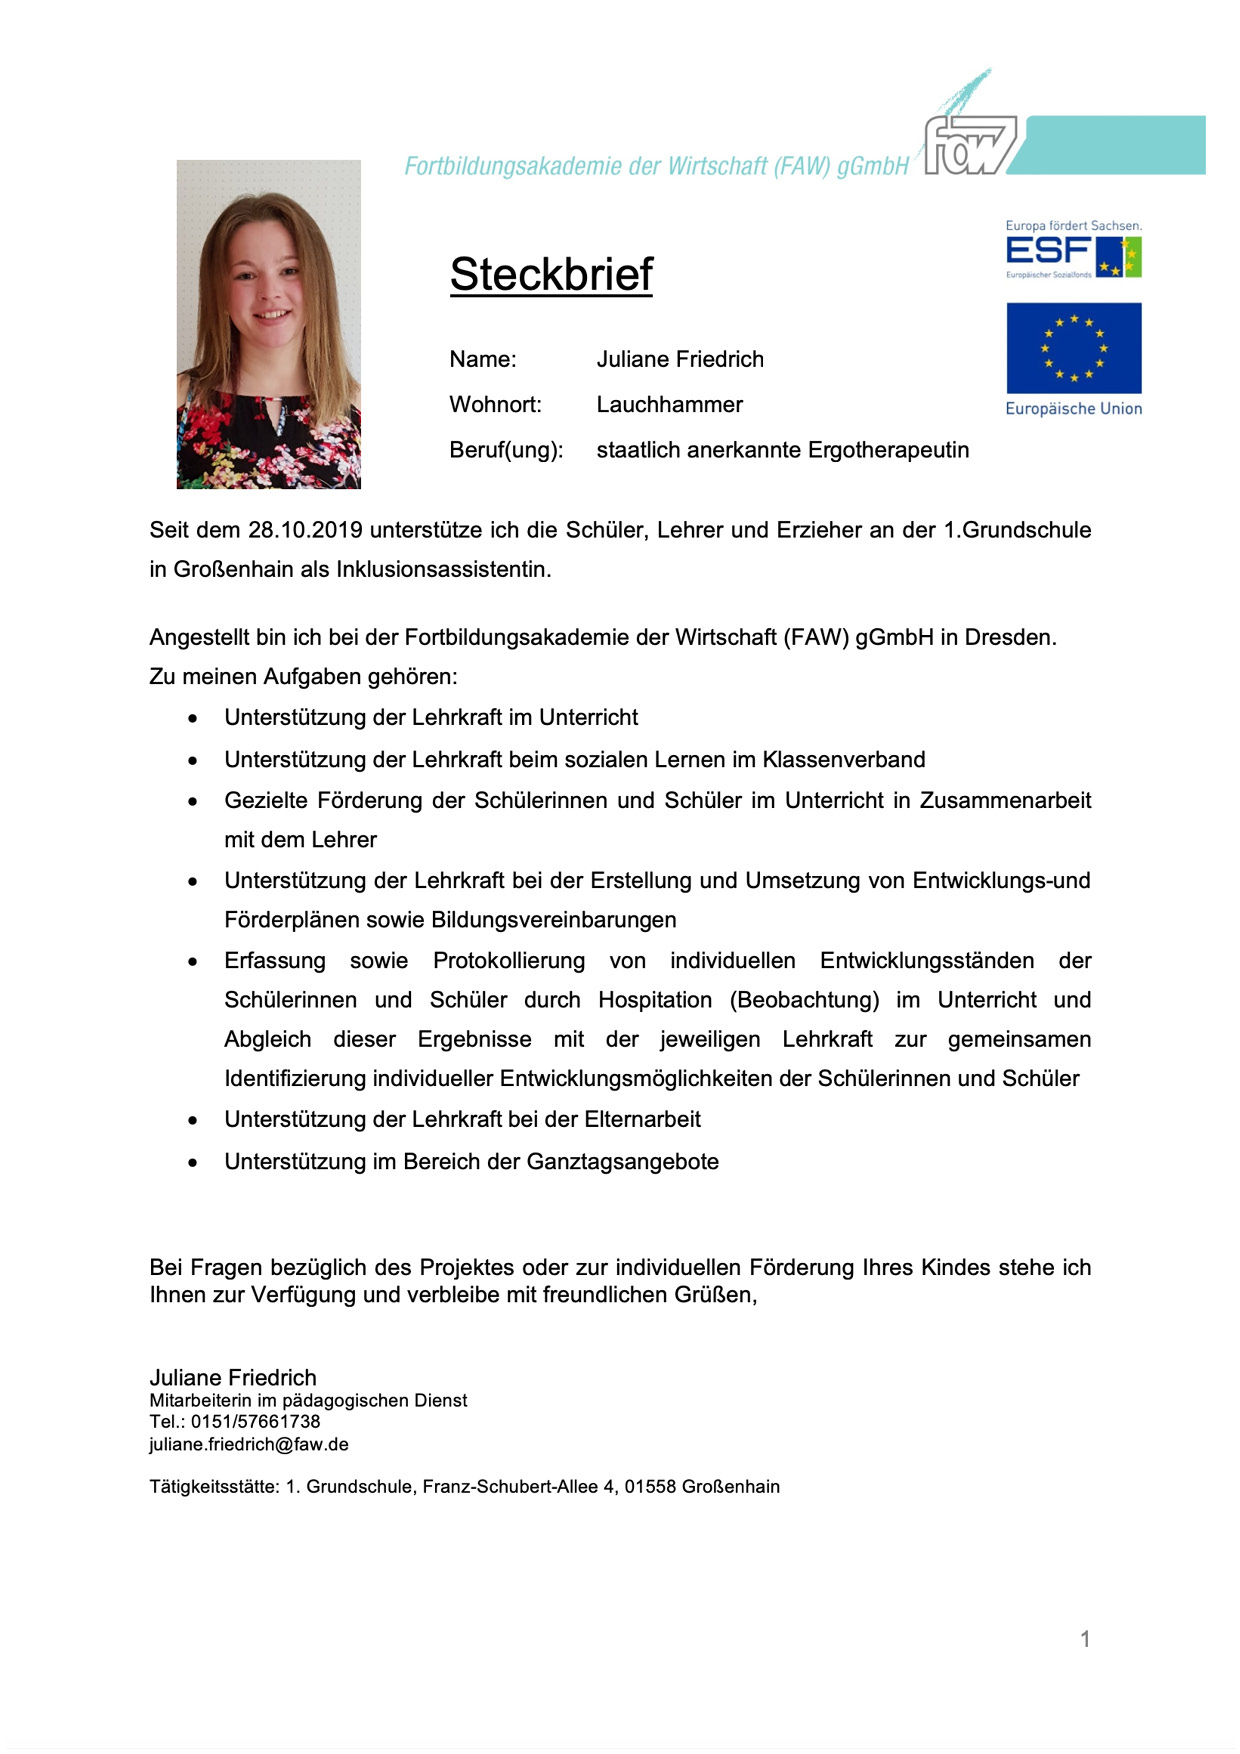 Steckbrief Juliane Friedrich